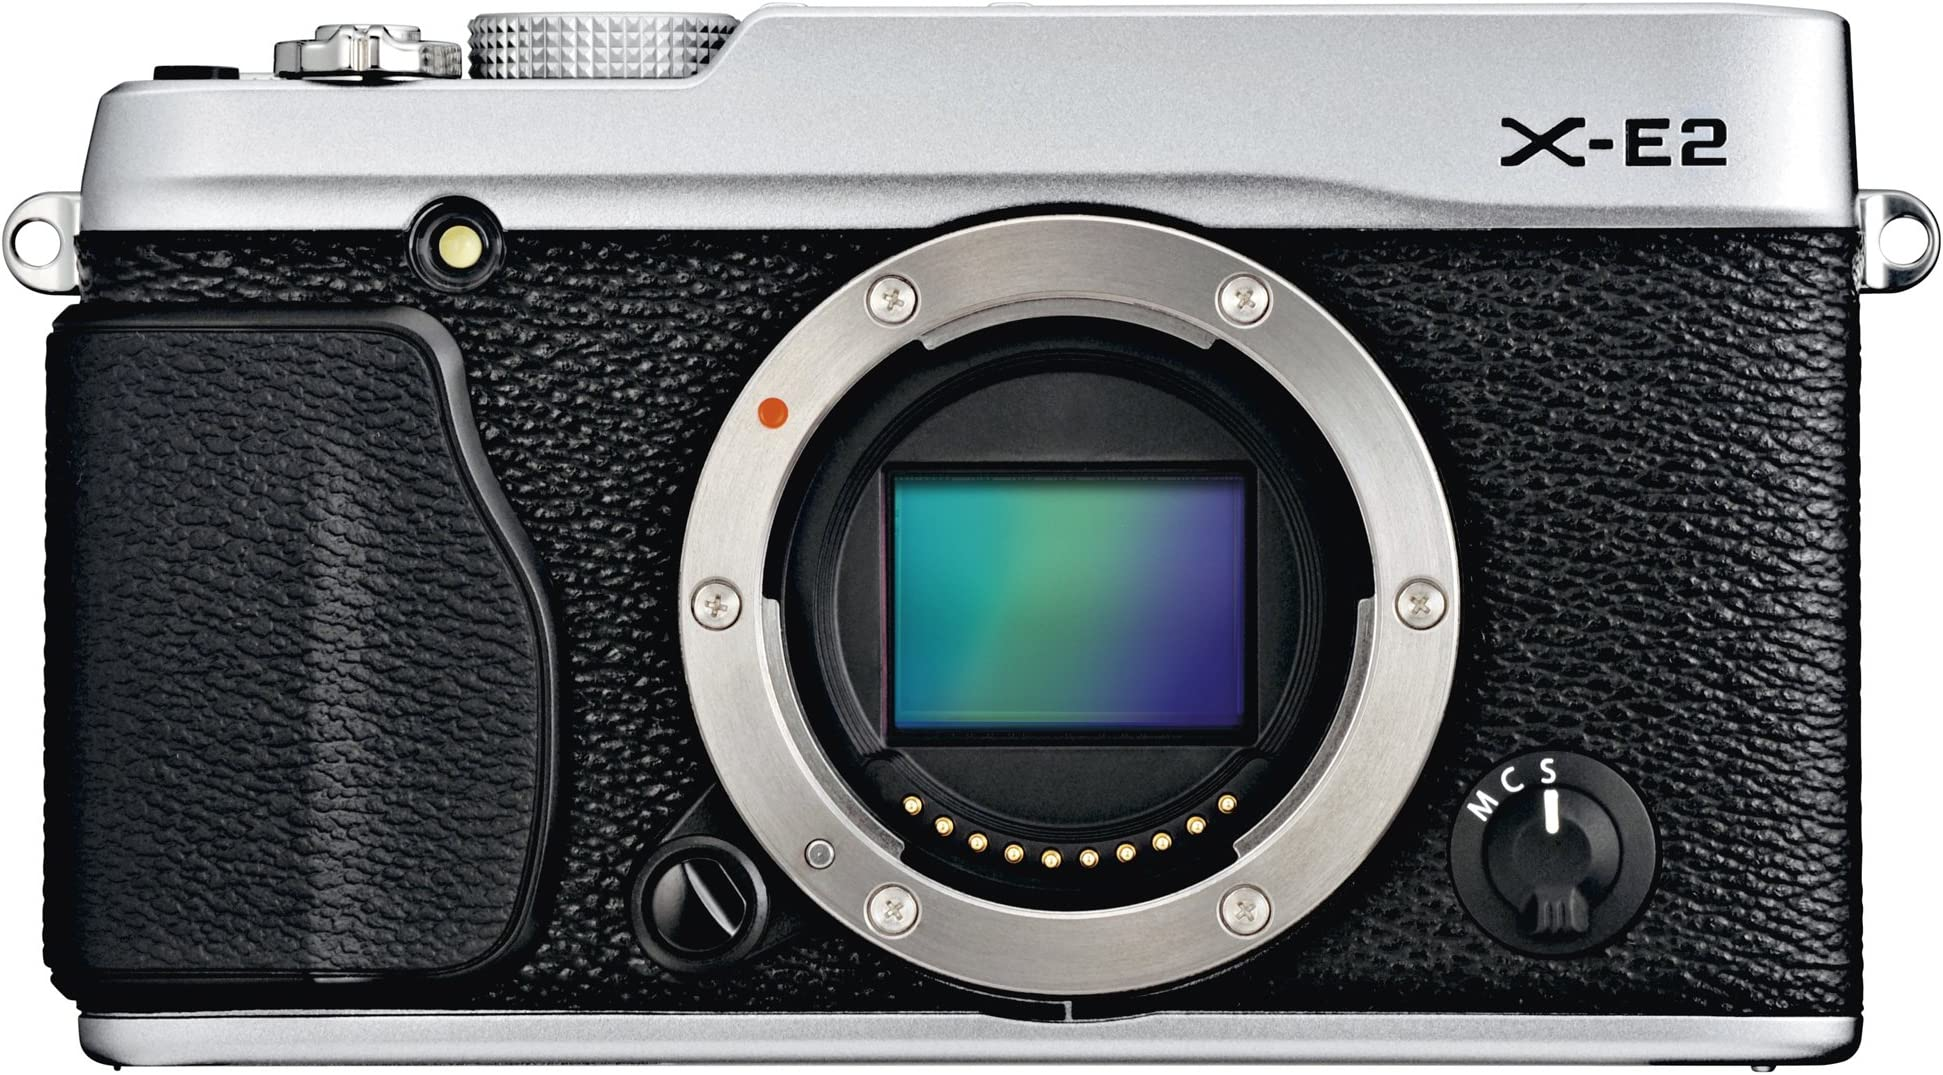 Fujifilm X-E2 16.3 MP Mirrorless Digital Camera with 3.0-Inch LCD - Body Only (Silver)